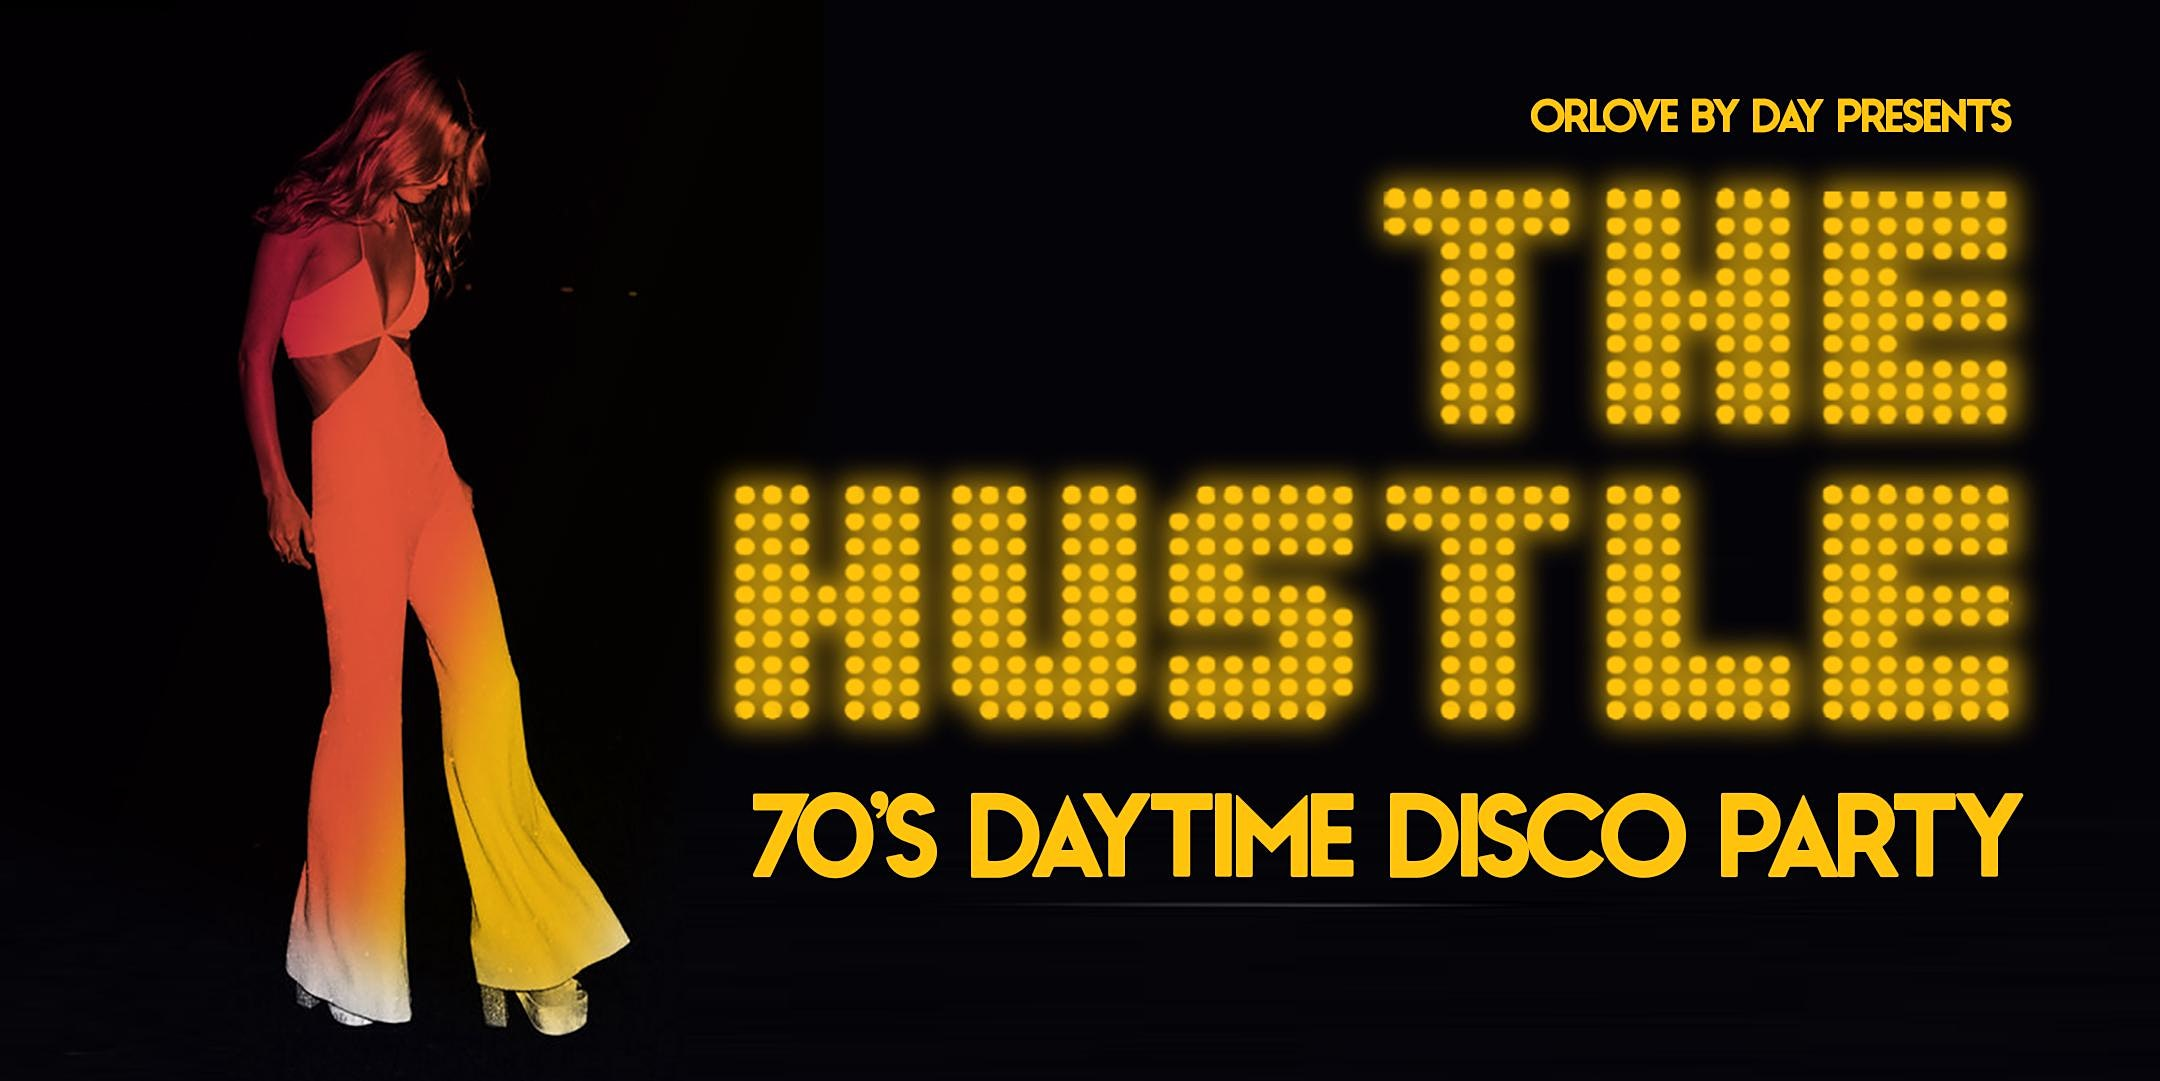 The Hustle: 70's Daytime Disco Party - SOLD OUT